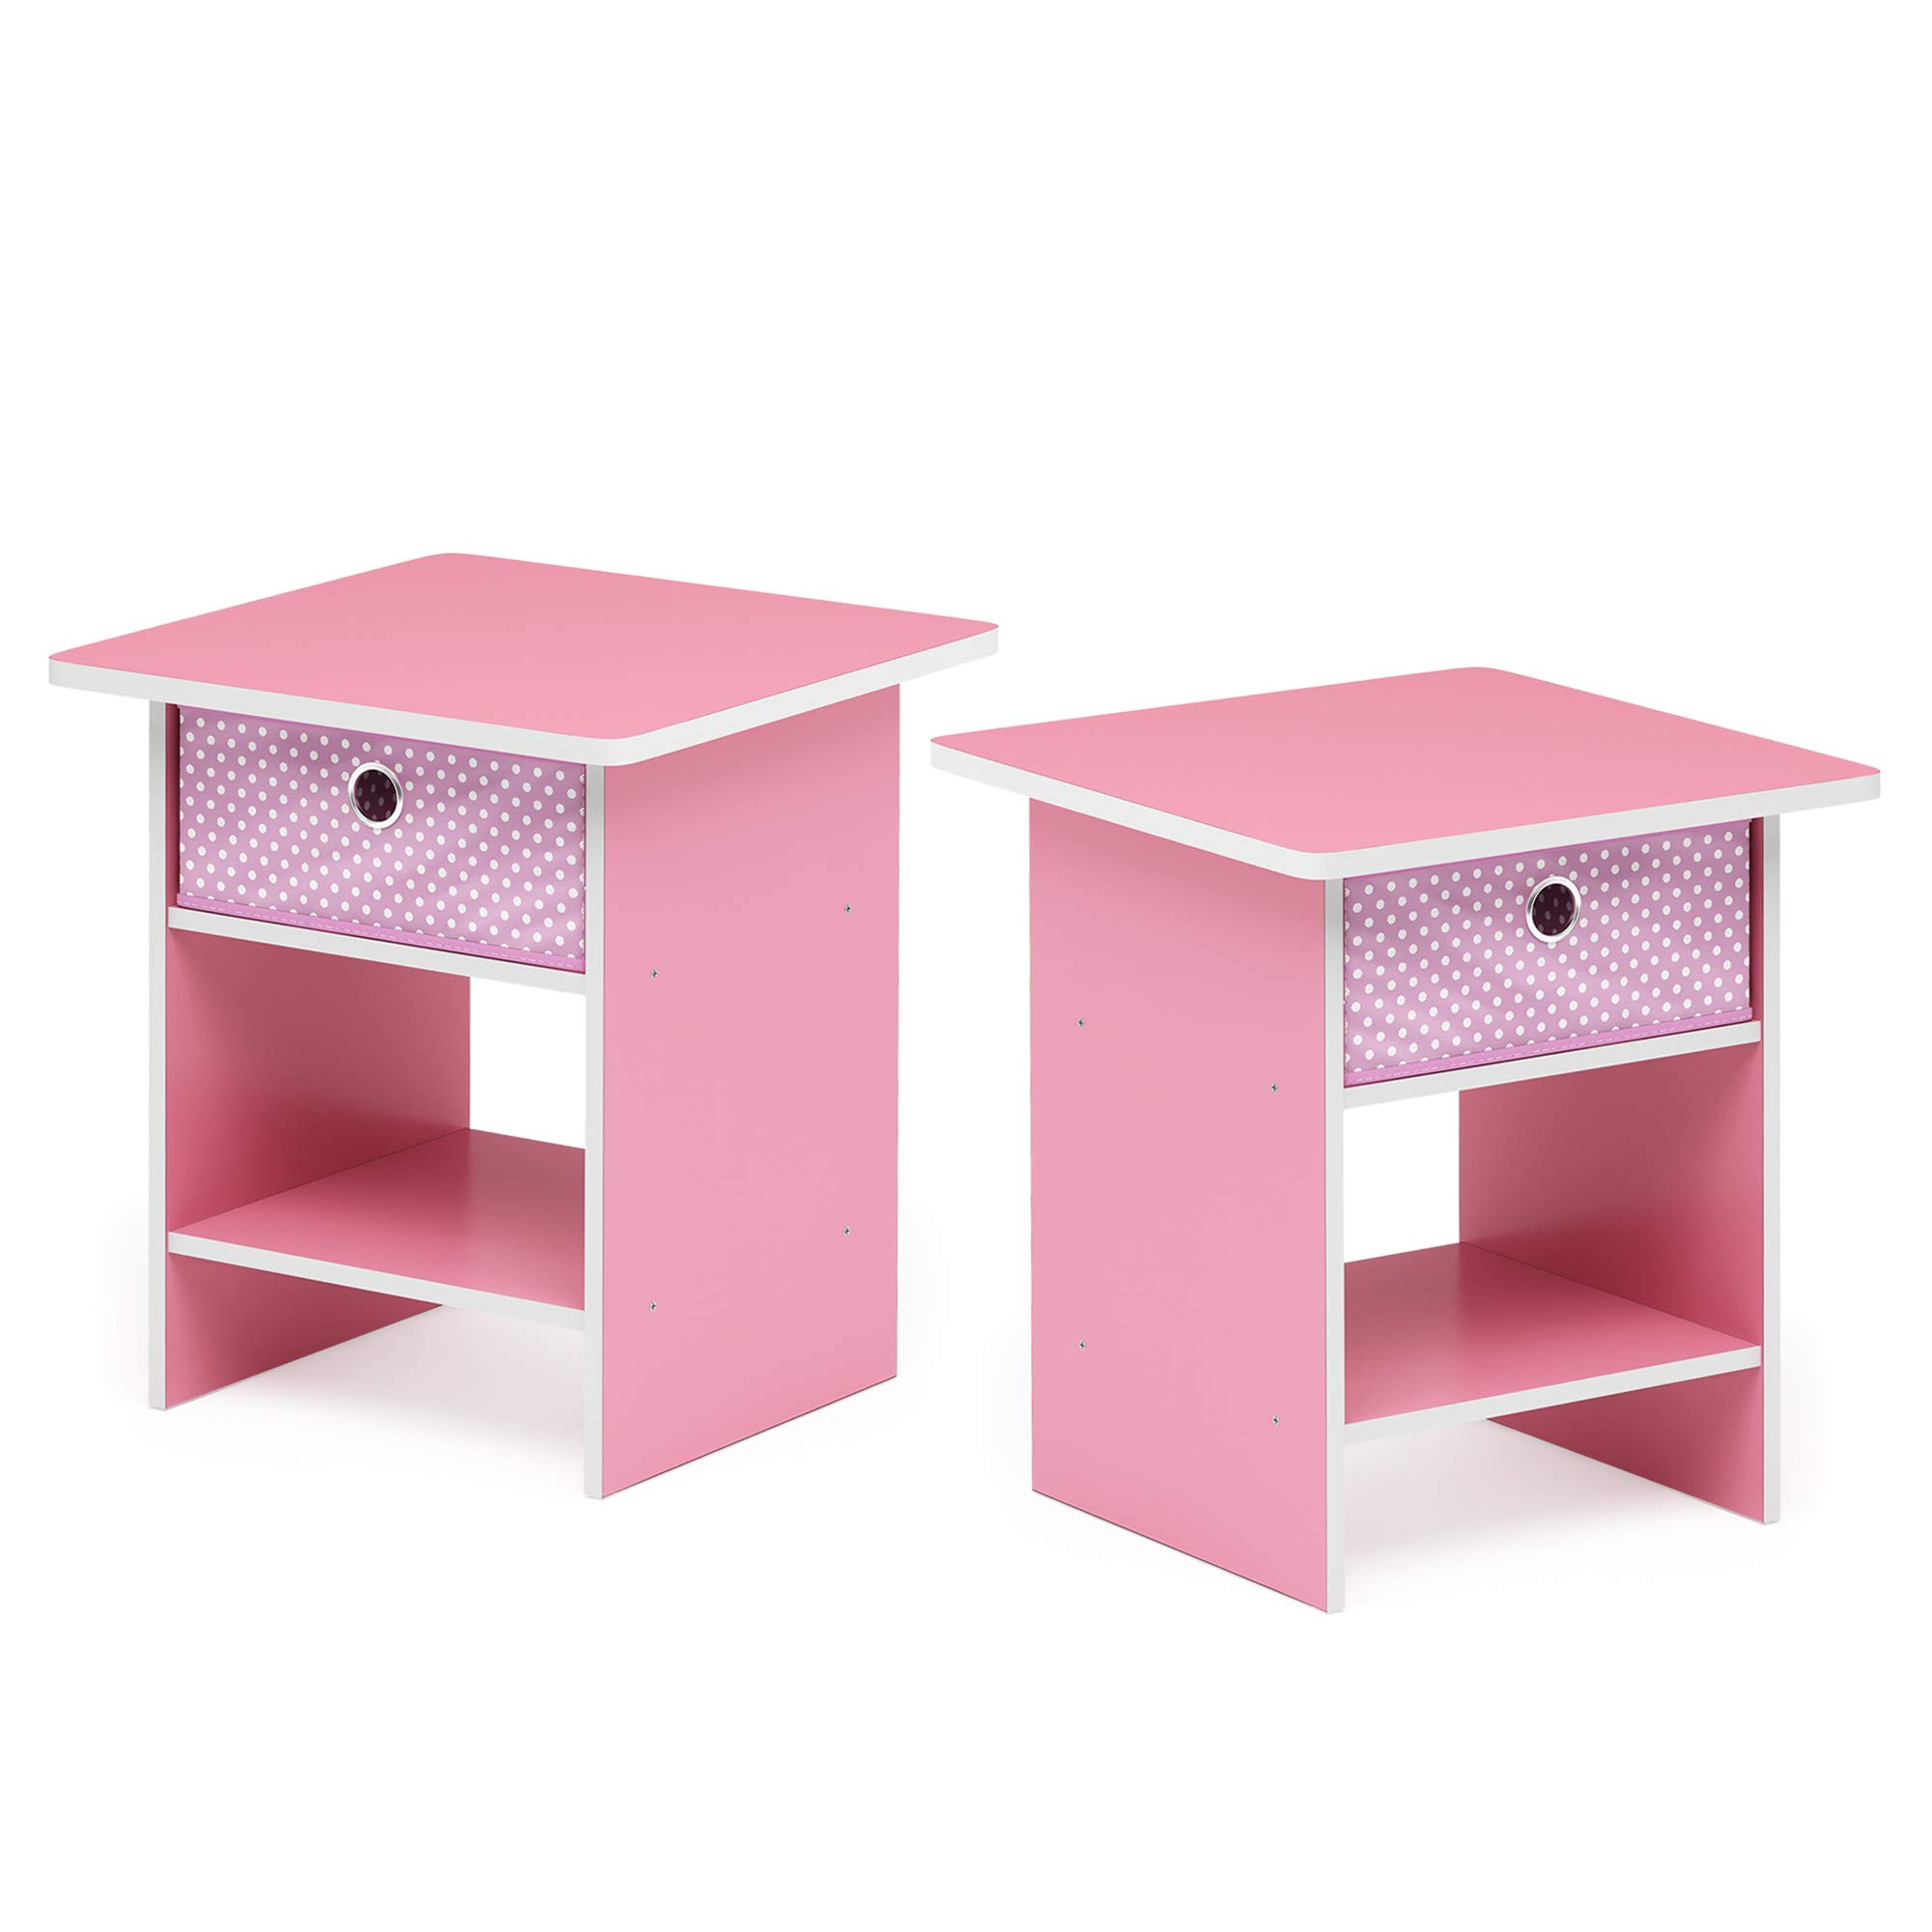 Furinno 2-10004PI Bin Drawer Storage 2-Pack End Table Nightstand, Light Pink by Furinno